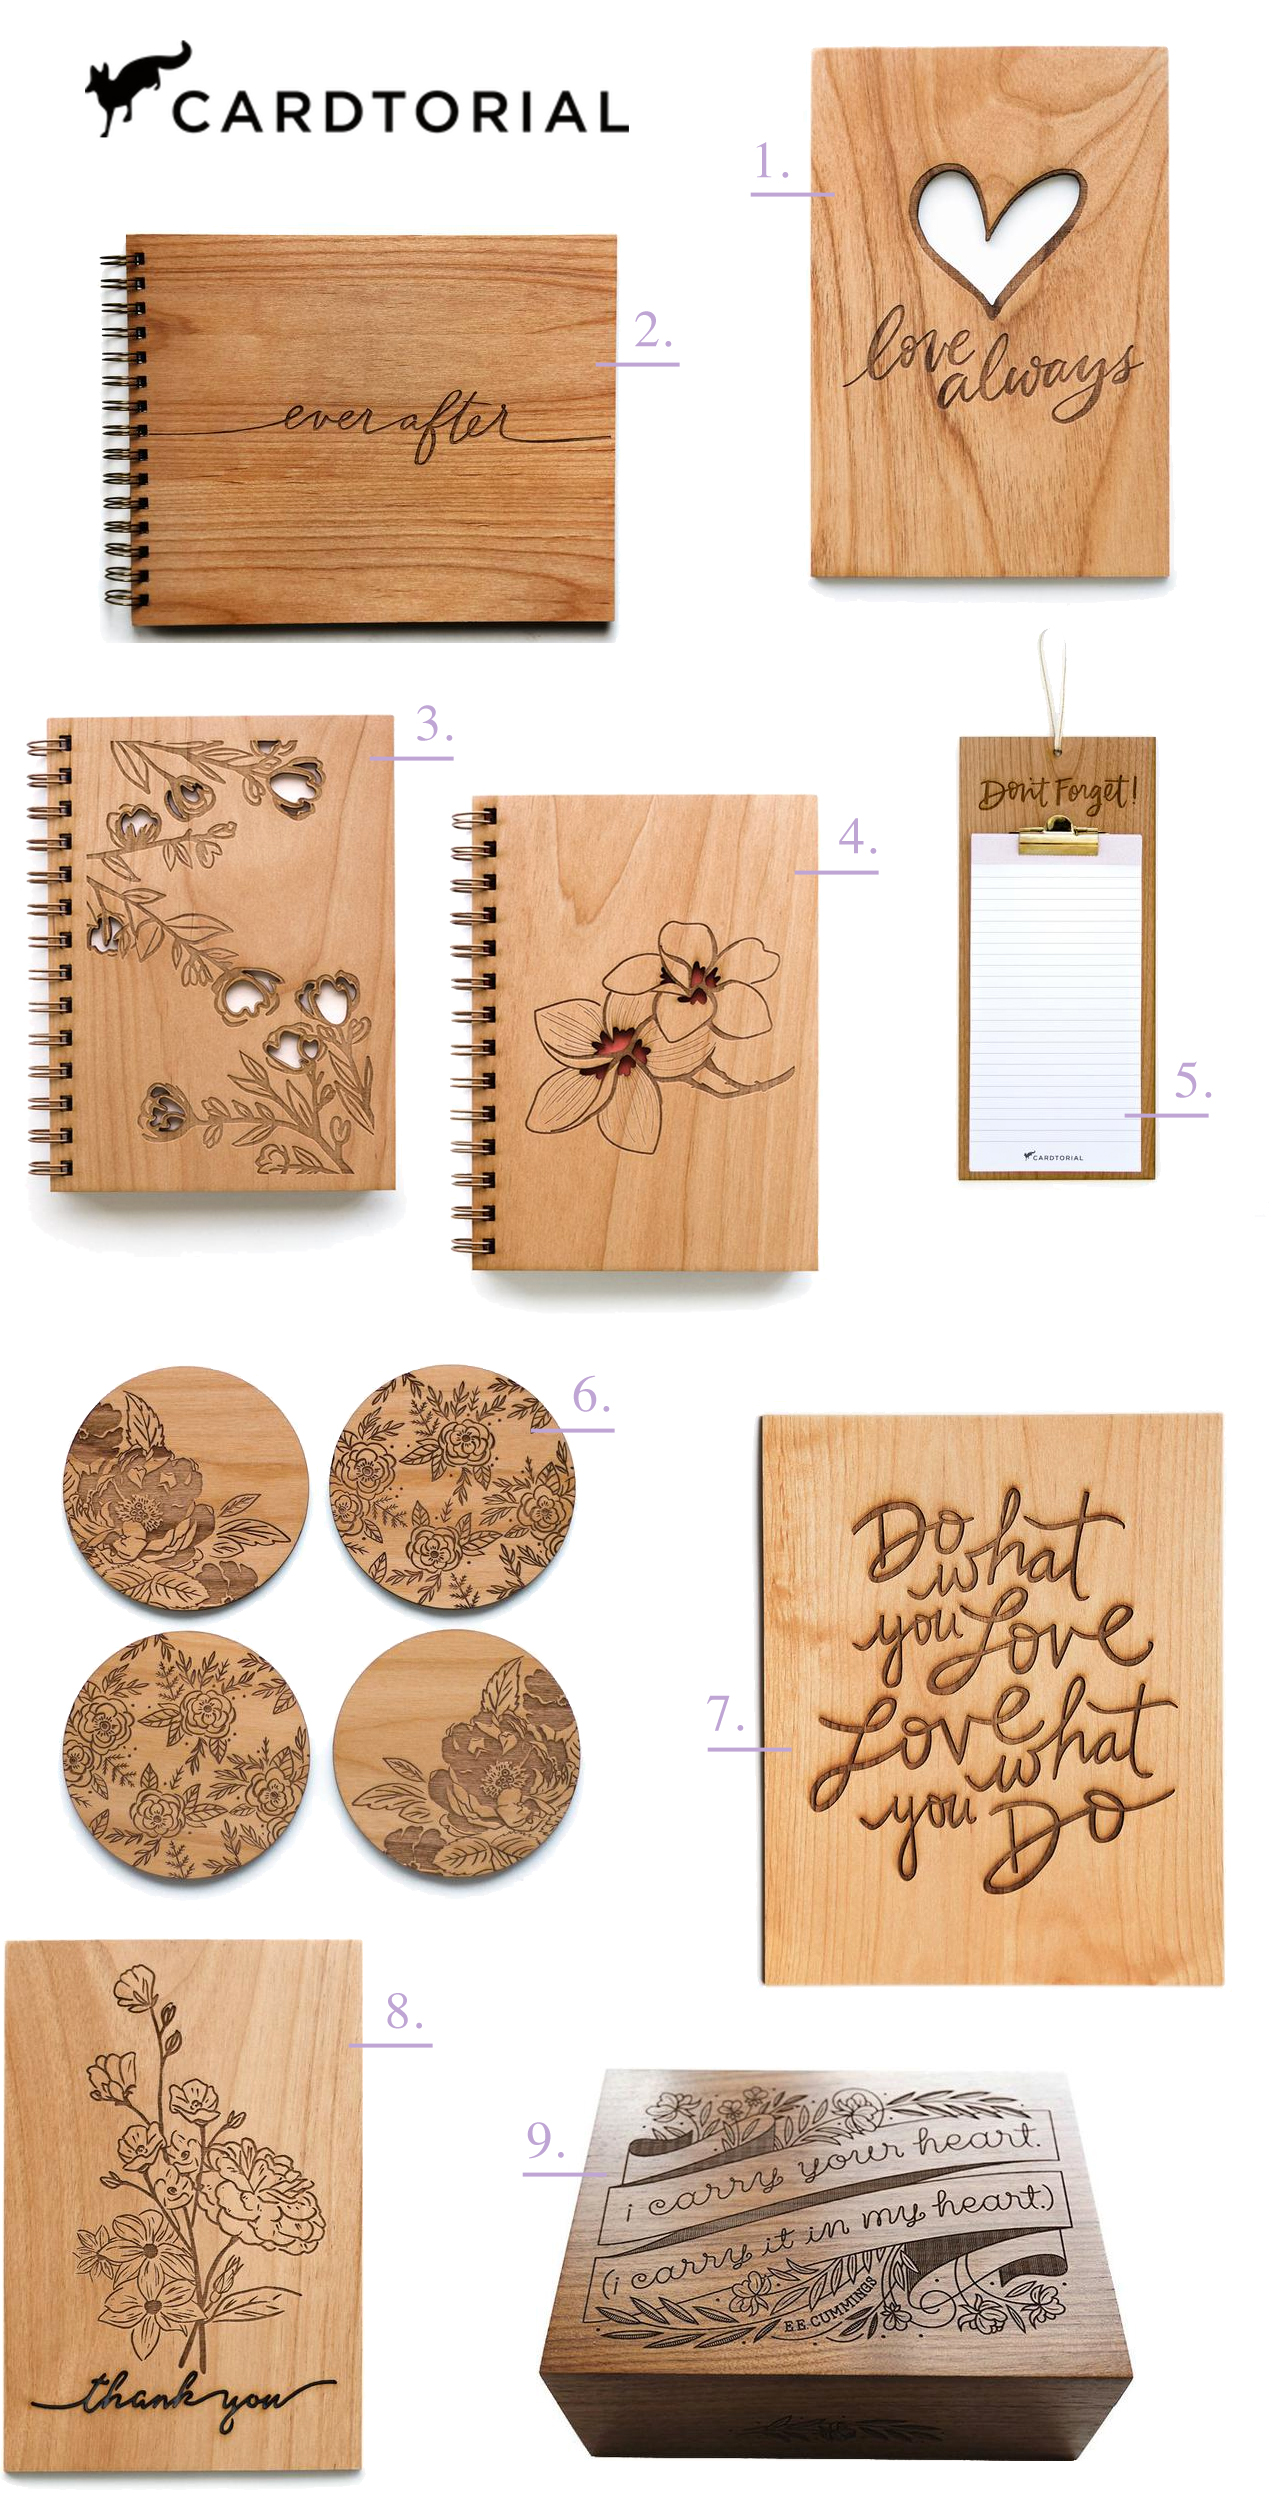 Cardtorial Wooden Gifts and Keepsake Stationery